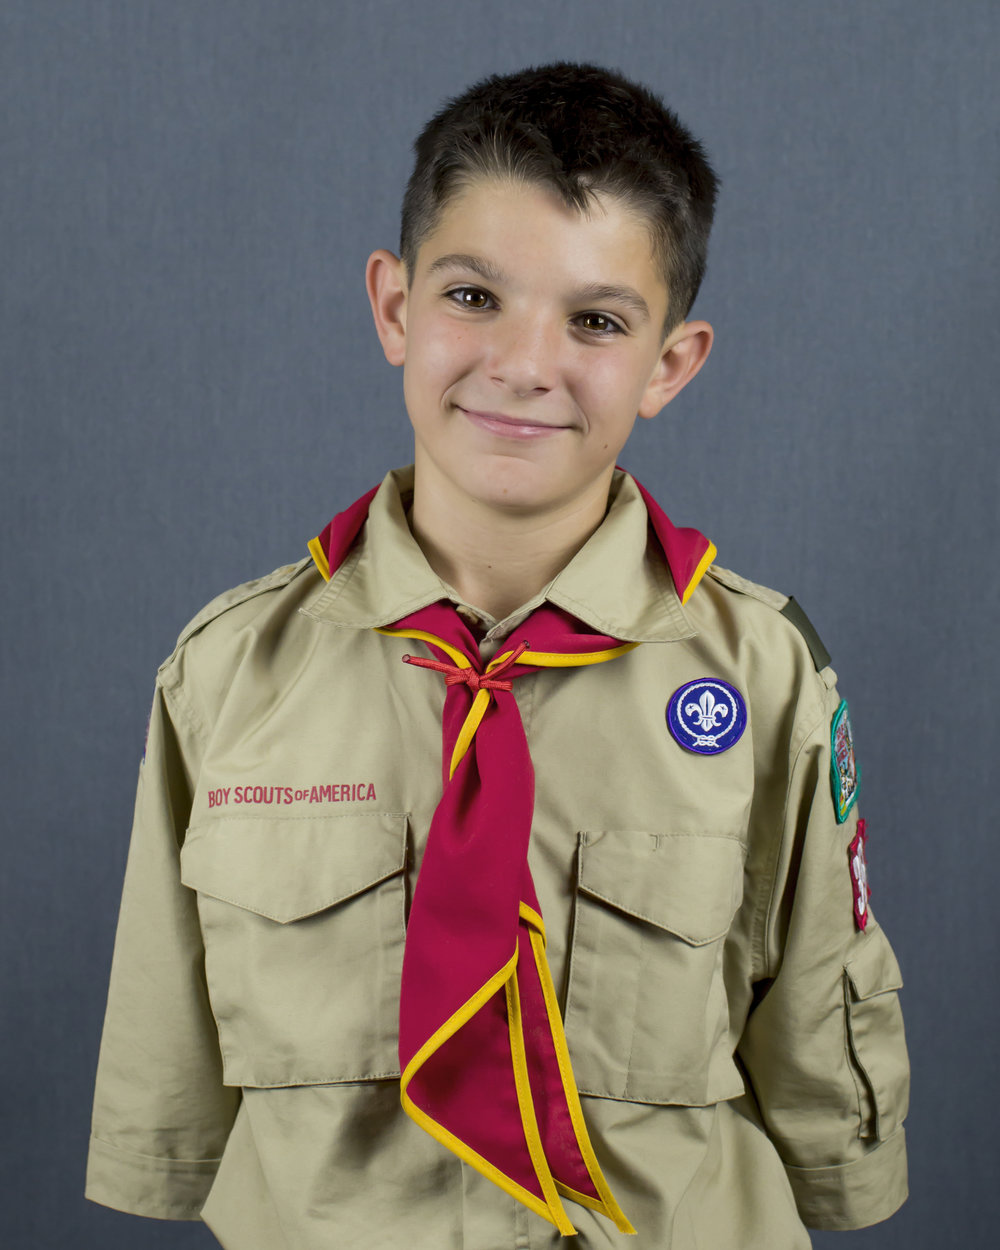 Boy Scout Headshot Portrait